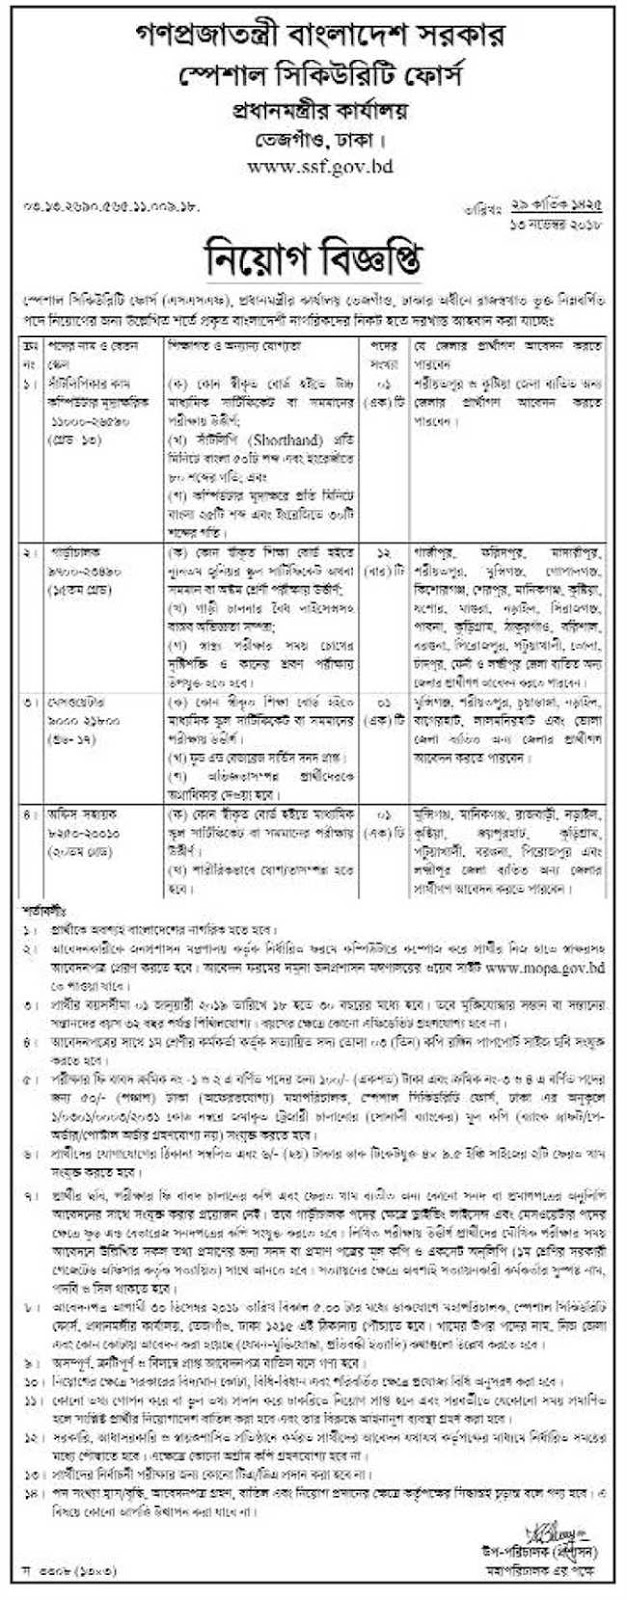 Special Security Force (SSF) Job Circular 2018